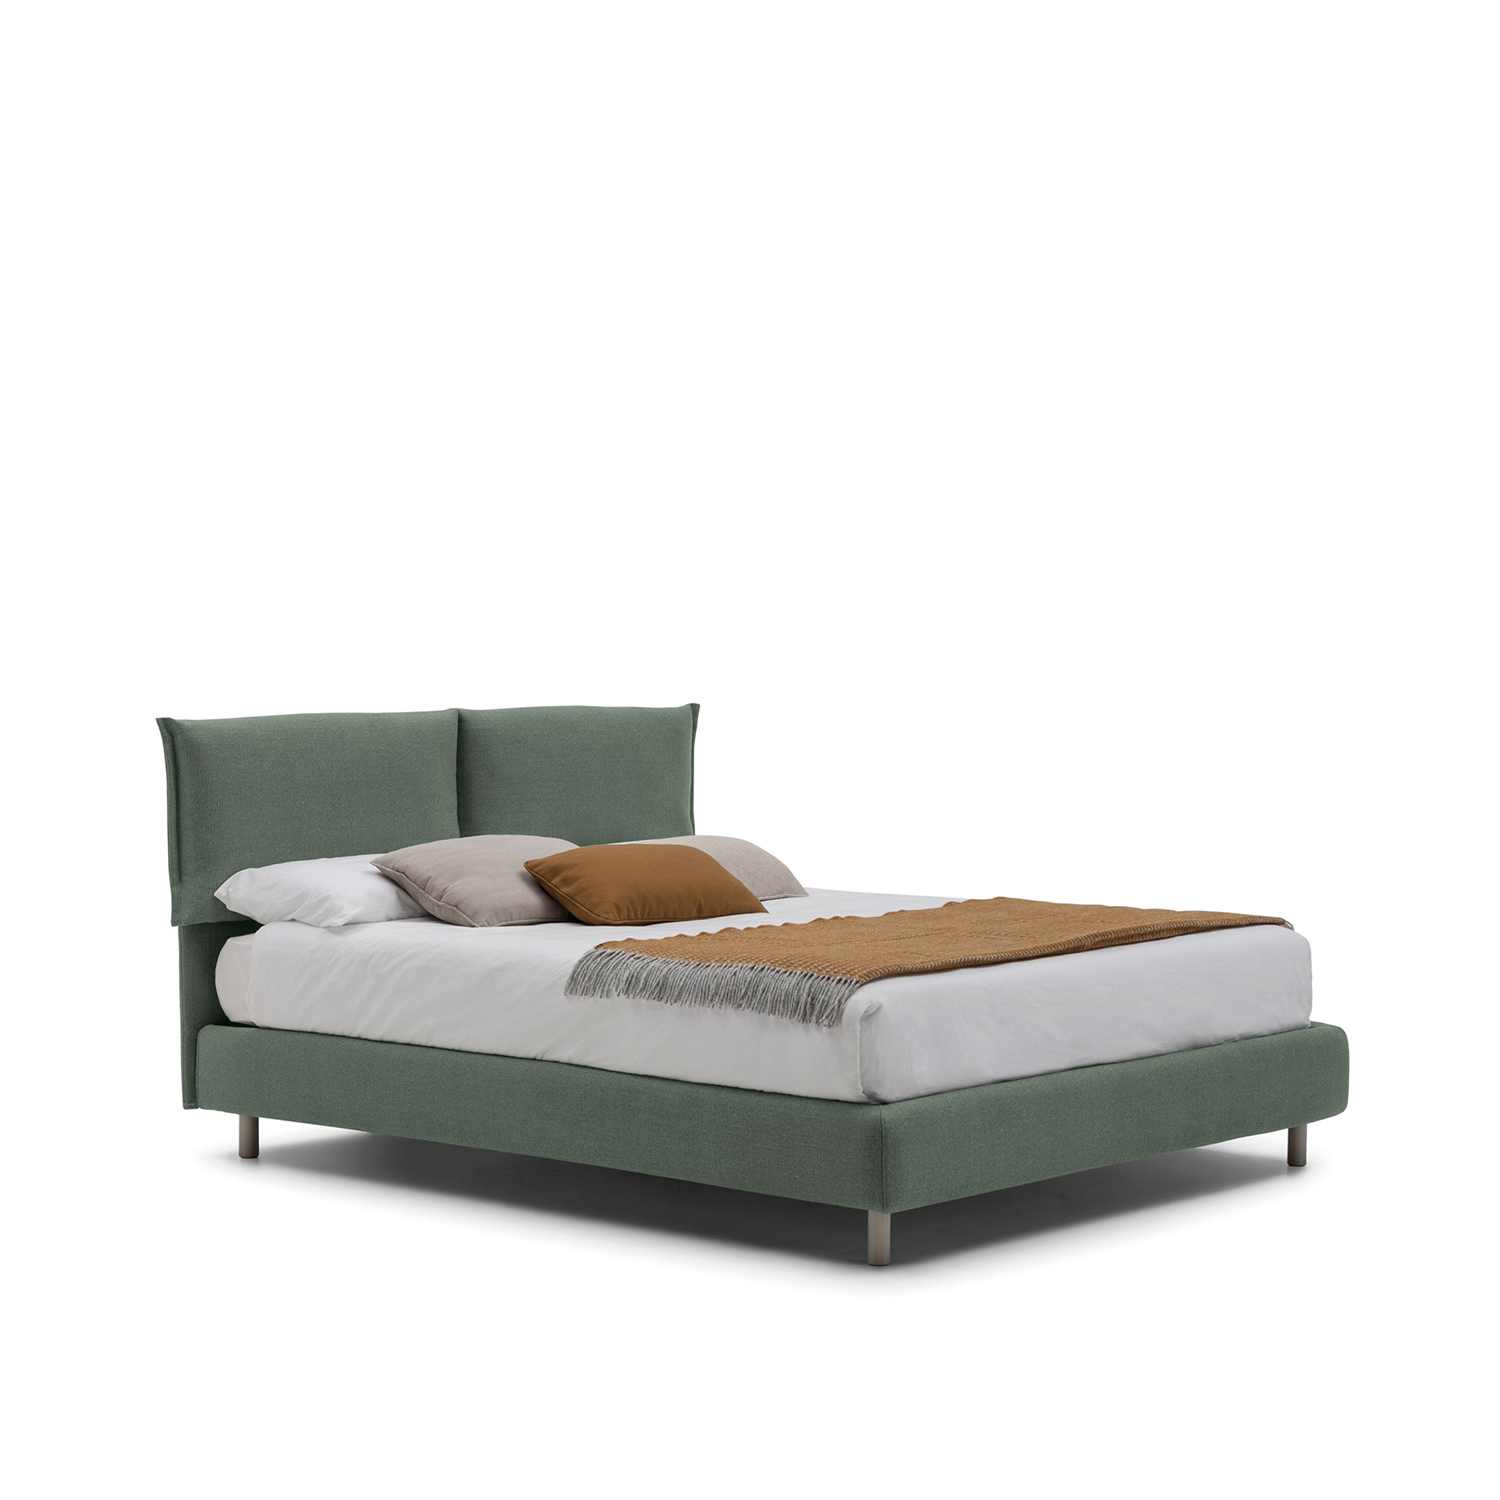 Iorca Bed - Tailored as an elegant dress, the headboard cushions are the most distinctive elements of Iorca. A project seeking beauty in its simplicity, interpreting best design lessons to achieve an impeccable result. The possibility to choose between different types of feet adds an extra touch of personalization.   All beds are available in different sizes and frame options. Please enquire for more details.   Matter of Stuff